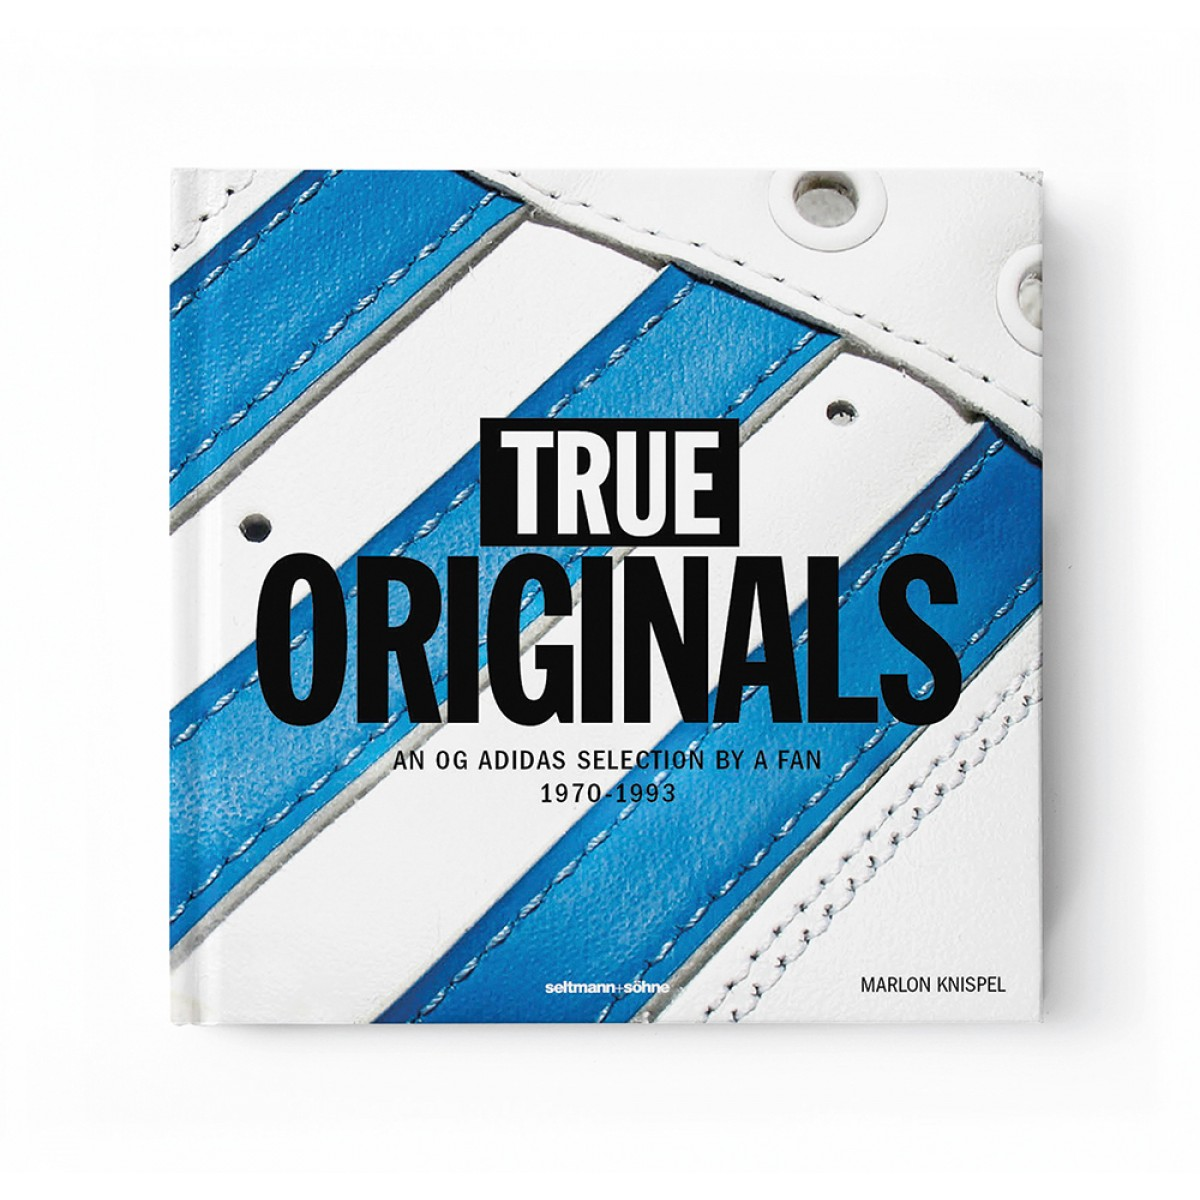 TRUE ORIGINALS - An OG adidas selection by a fan 1970–1993